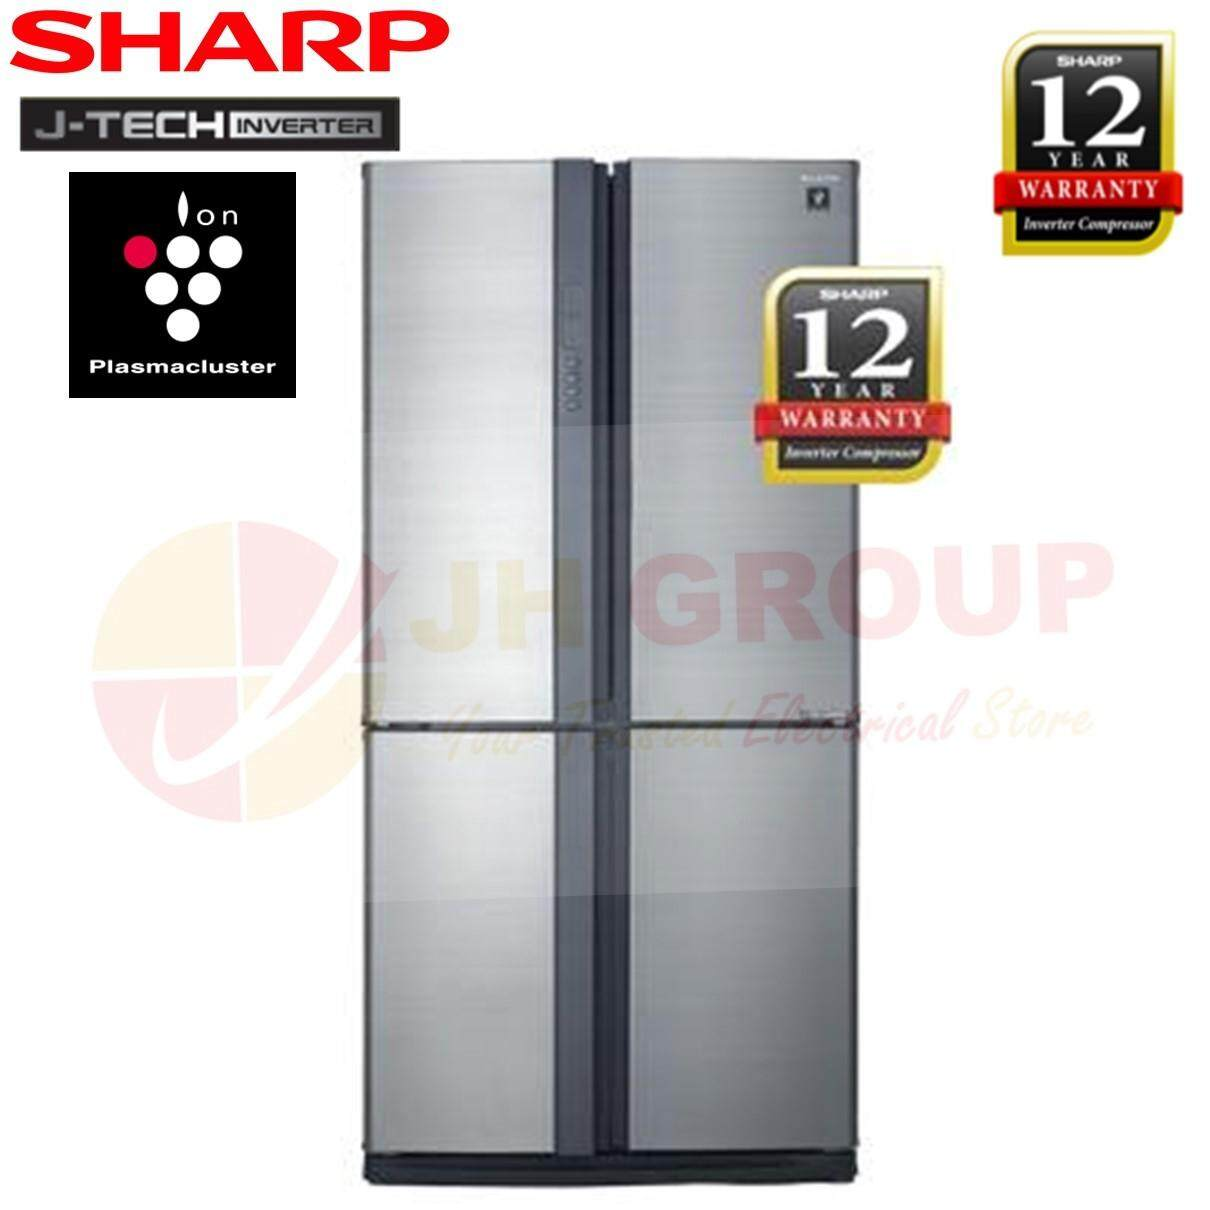 53a07479f (AUTHORISED DEALER) SHARP SJF95VMSS 750L 4 DOOR J-TECH INVERTER REFRIGERATOR